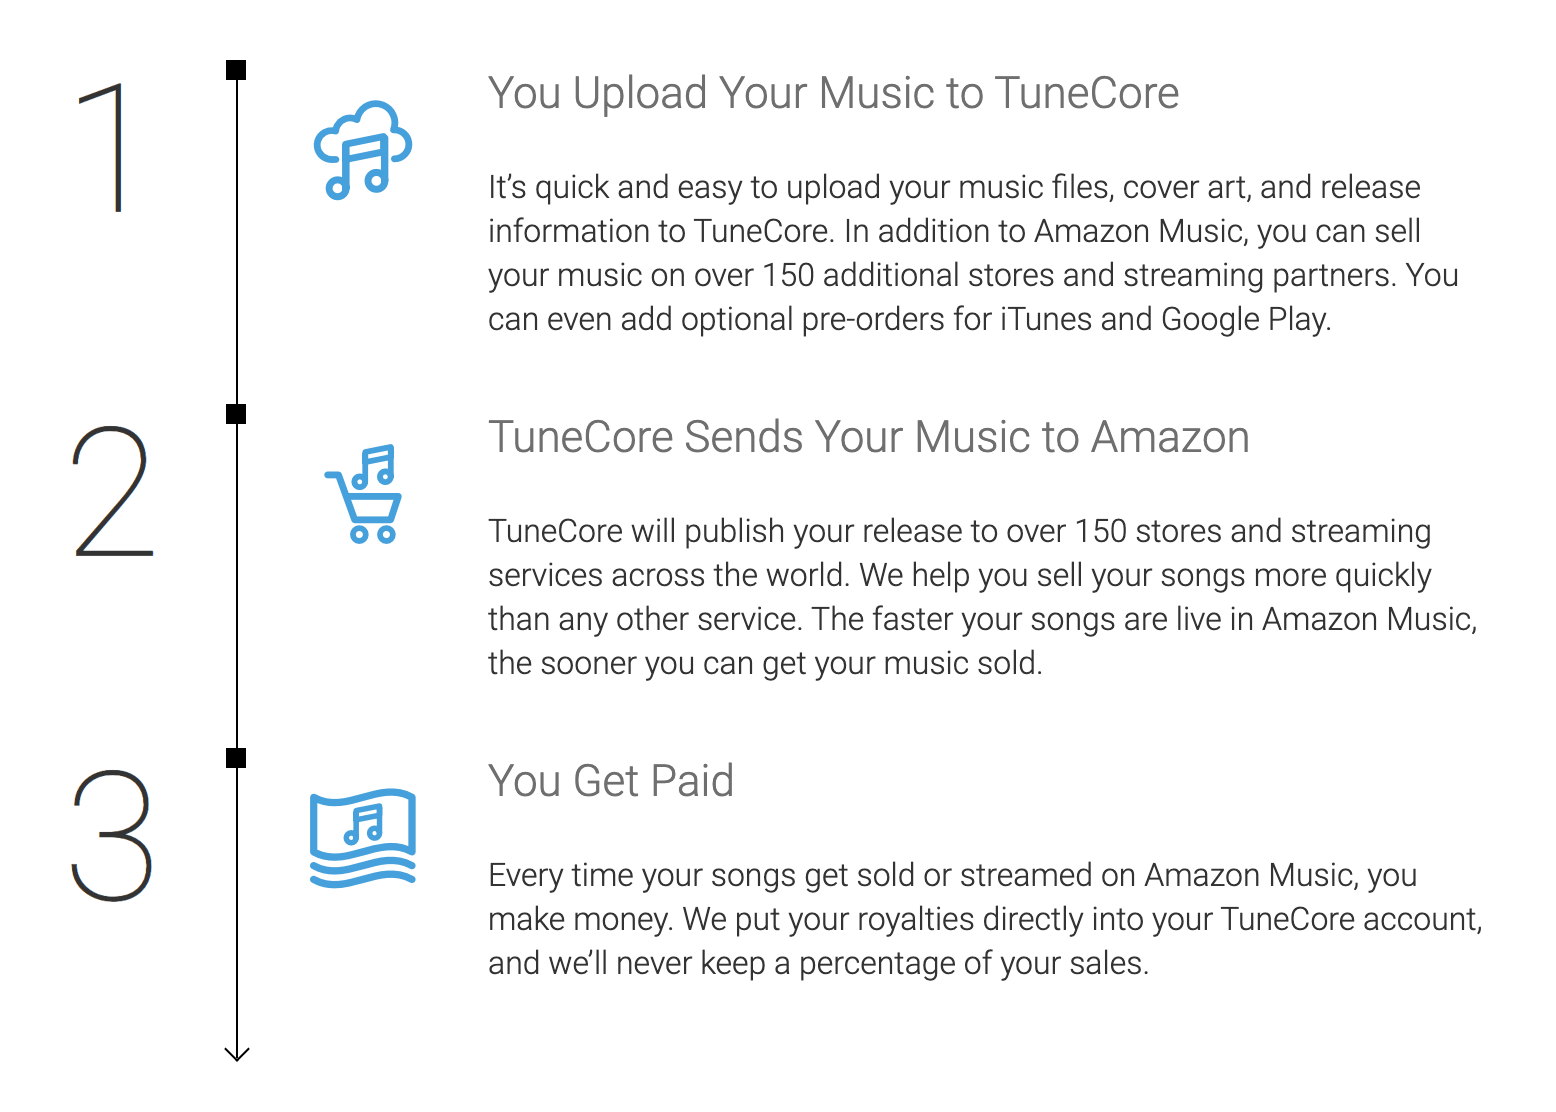 Sell your music on Amazon with TuneCore